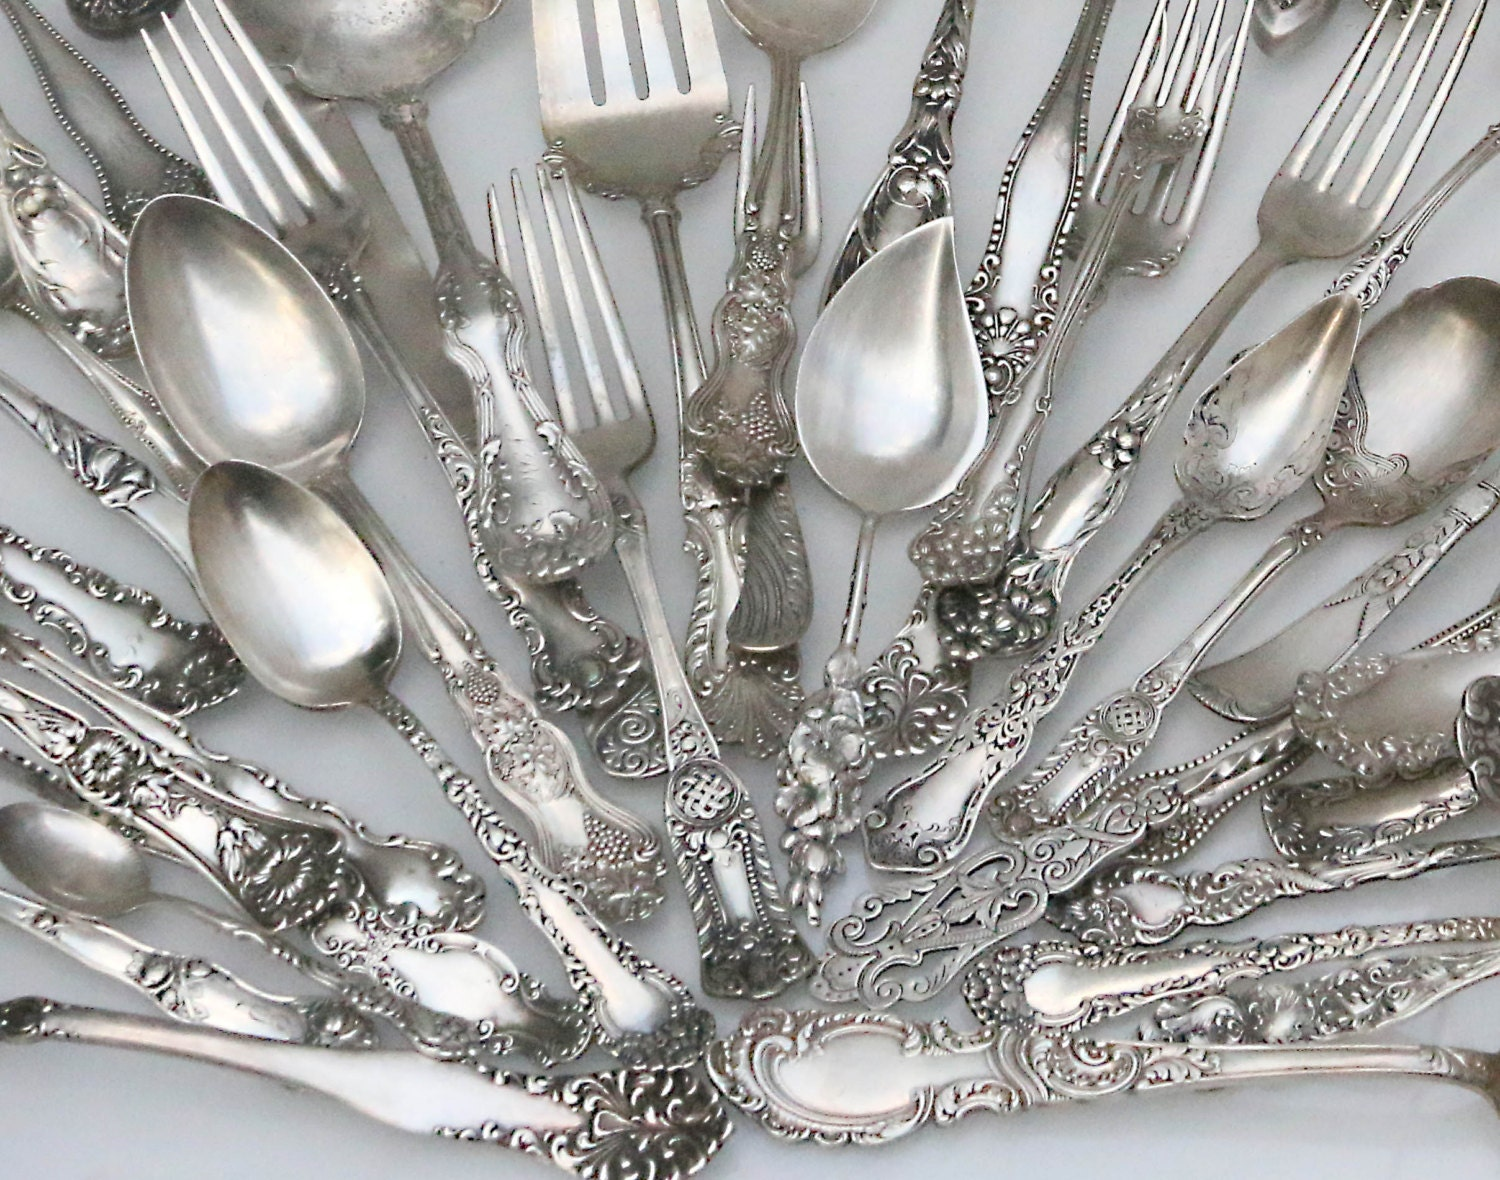 Reserved listing for 40 individual sets ornate unique Unique flatware sets